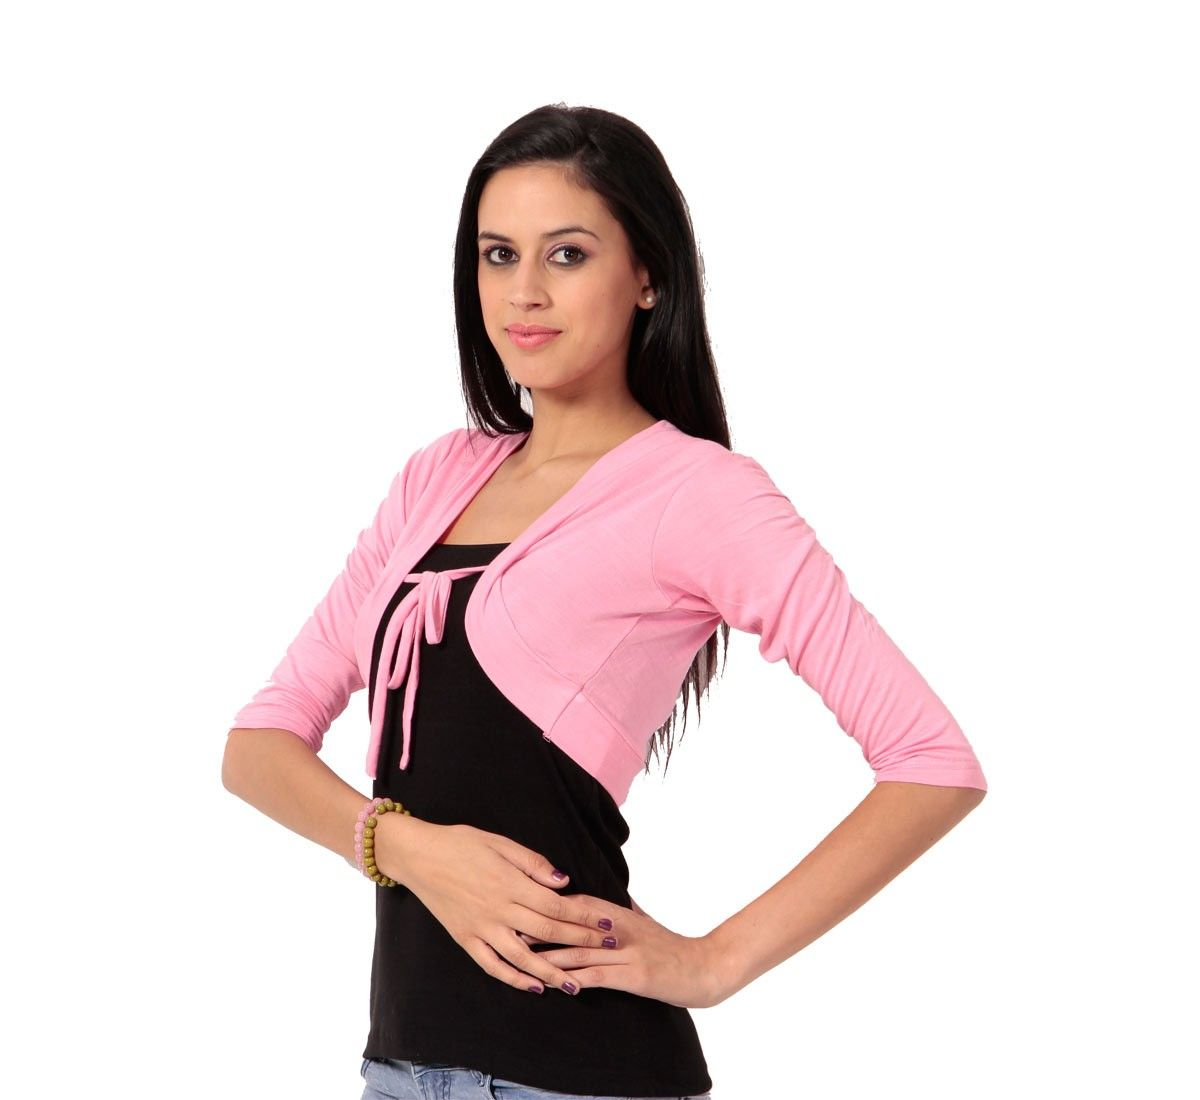 67d52b960d Buy Teemoods Stylish Pink Short Shrug online for girls in India at  reasonable price